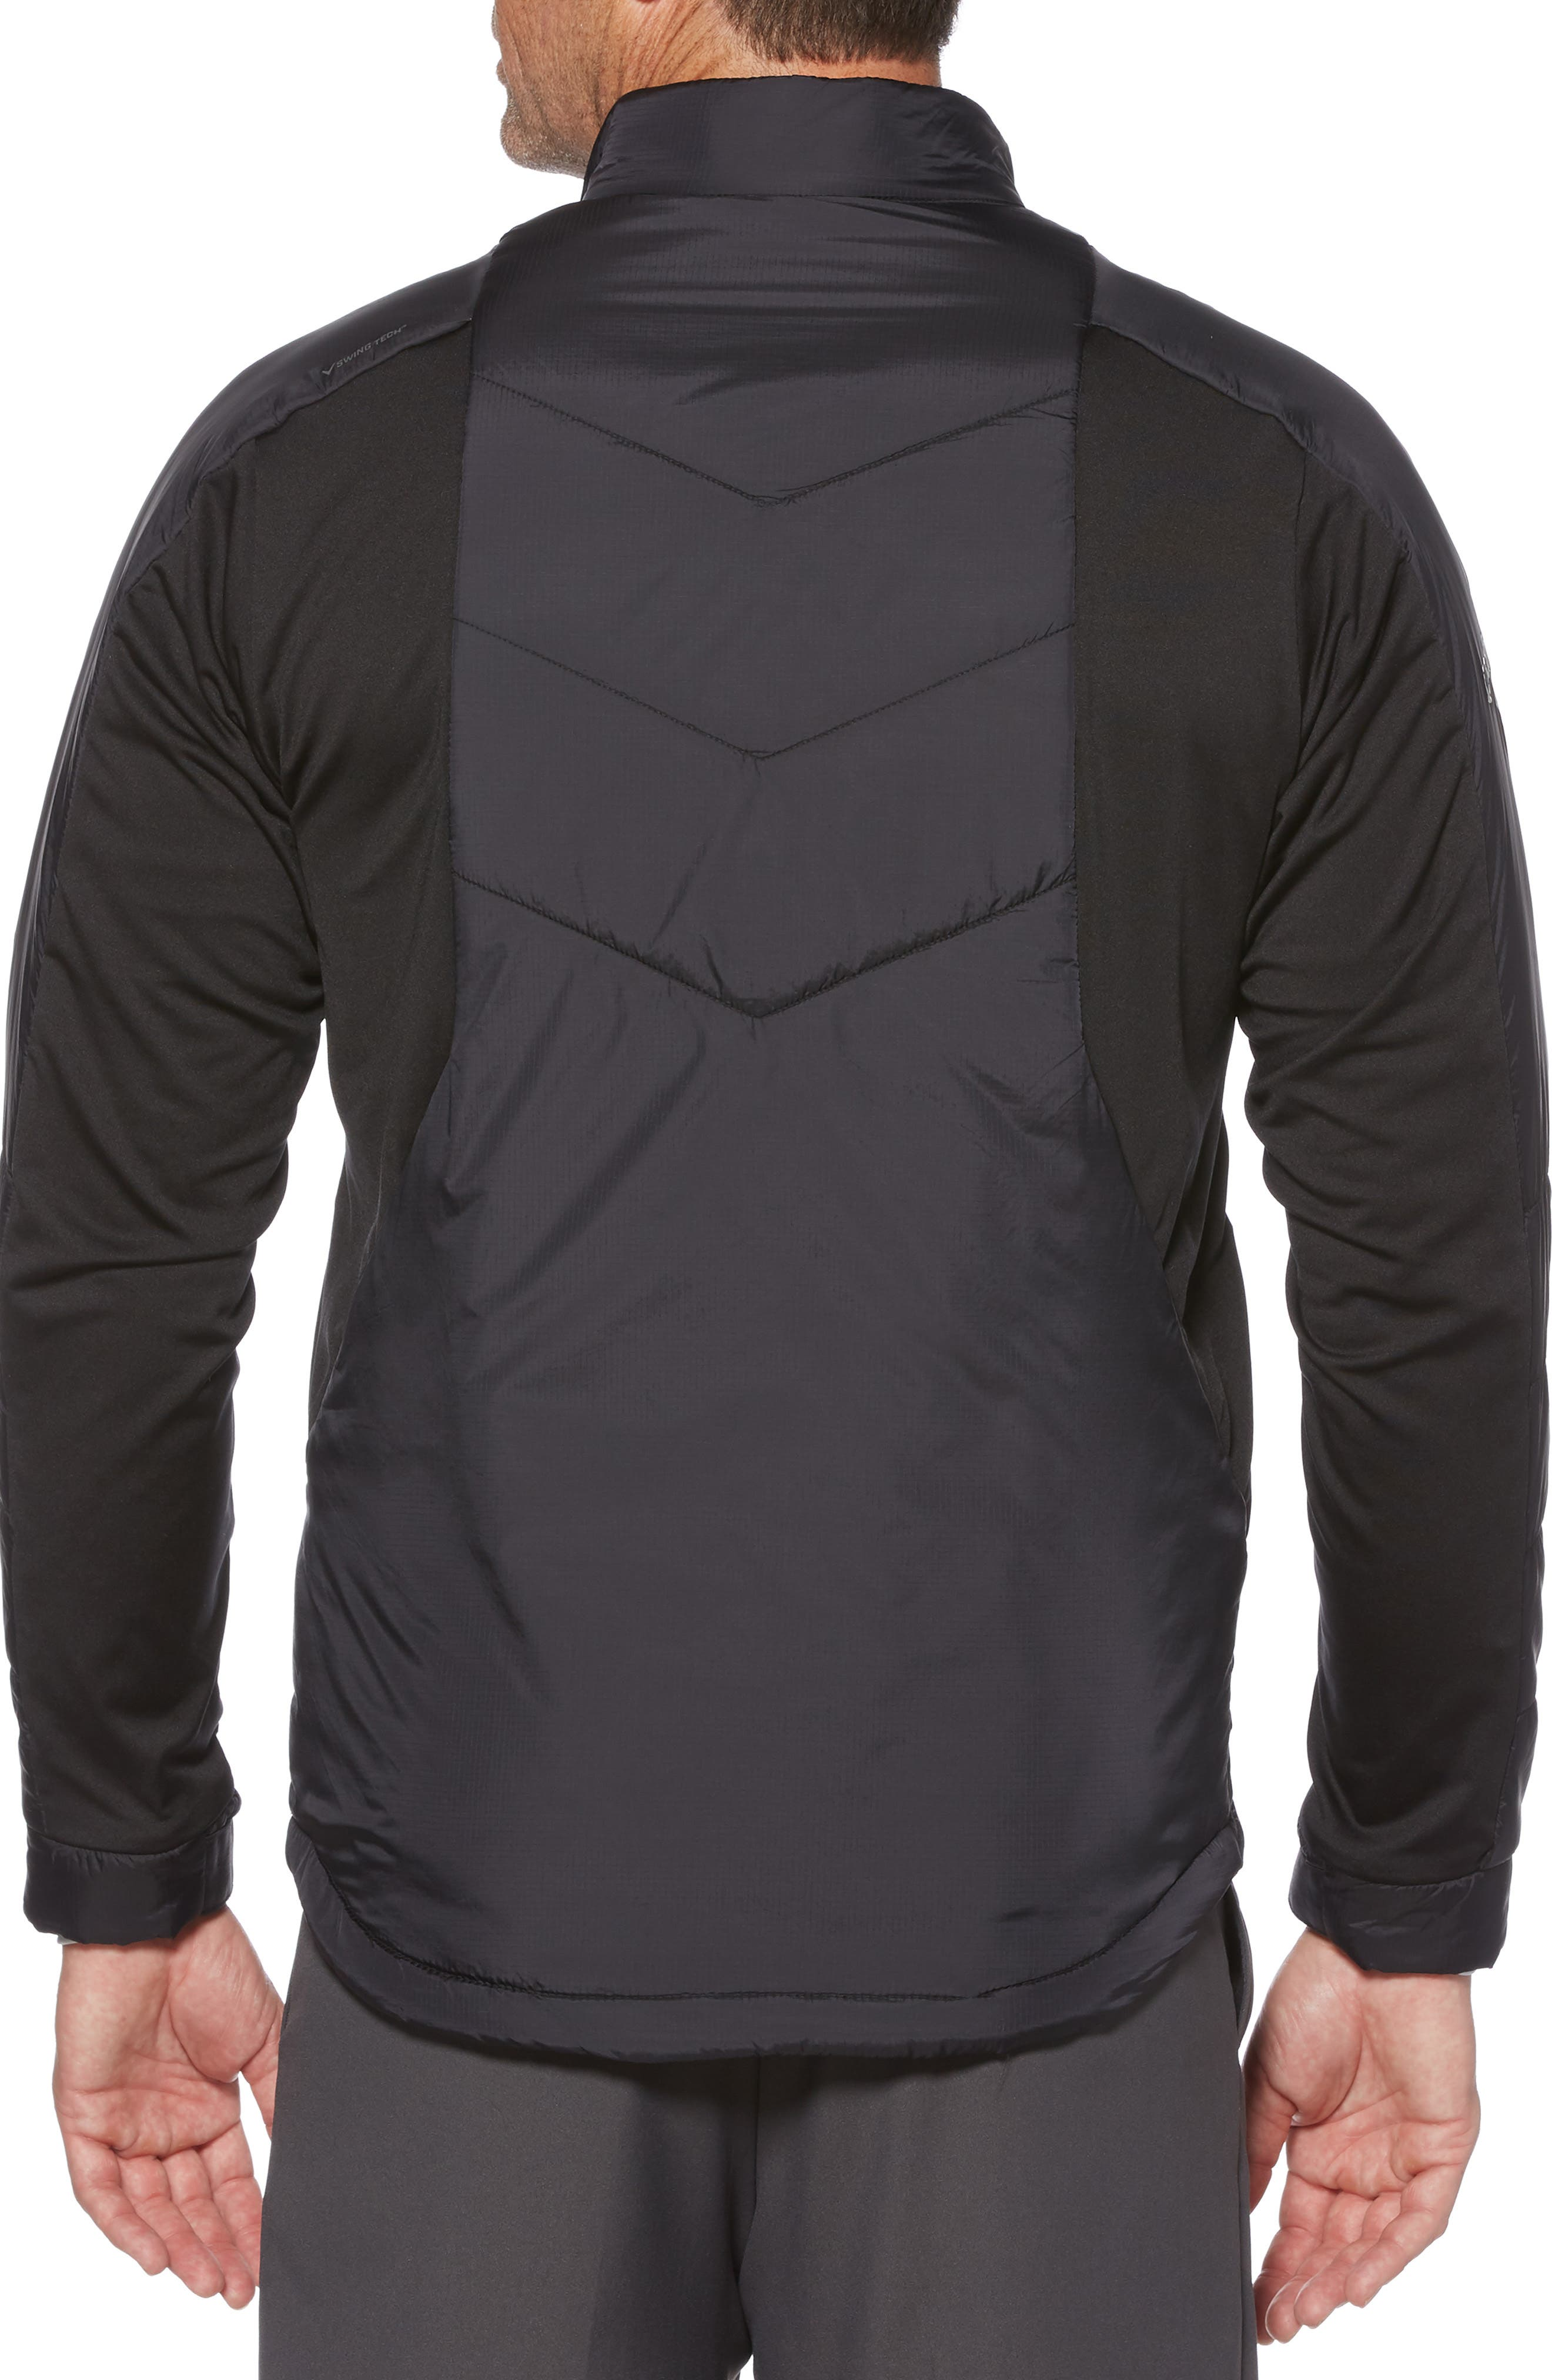 Performance Puffer Jacket,                             Alternate thumbnail 2, color,                             002